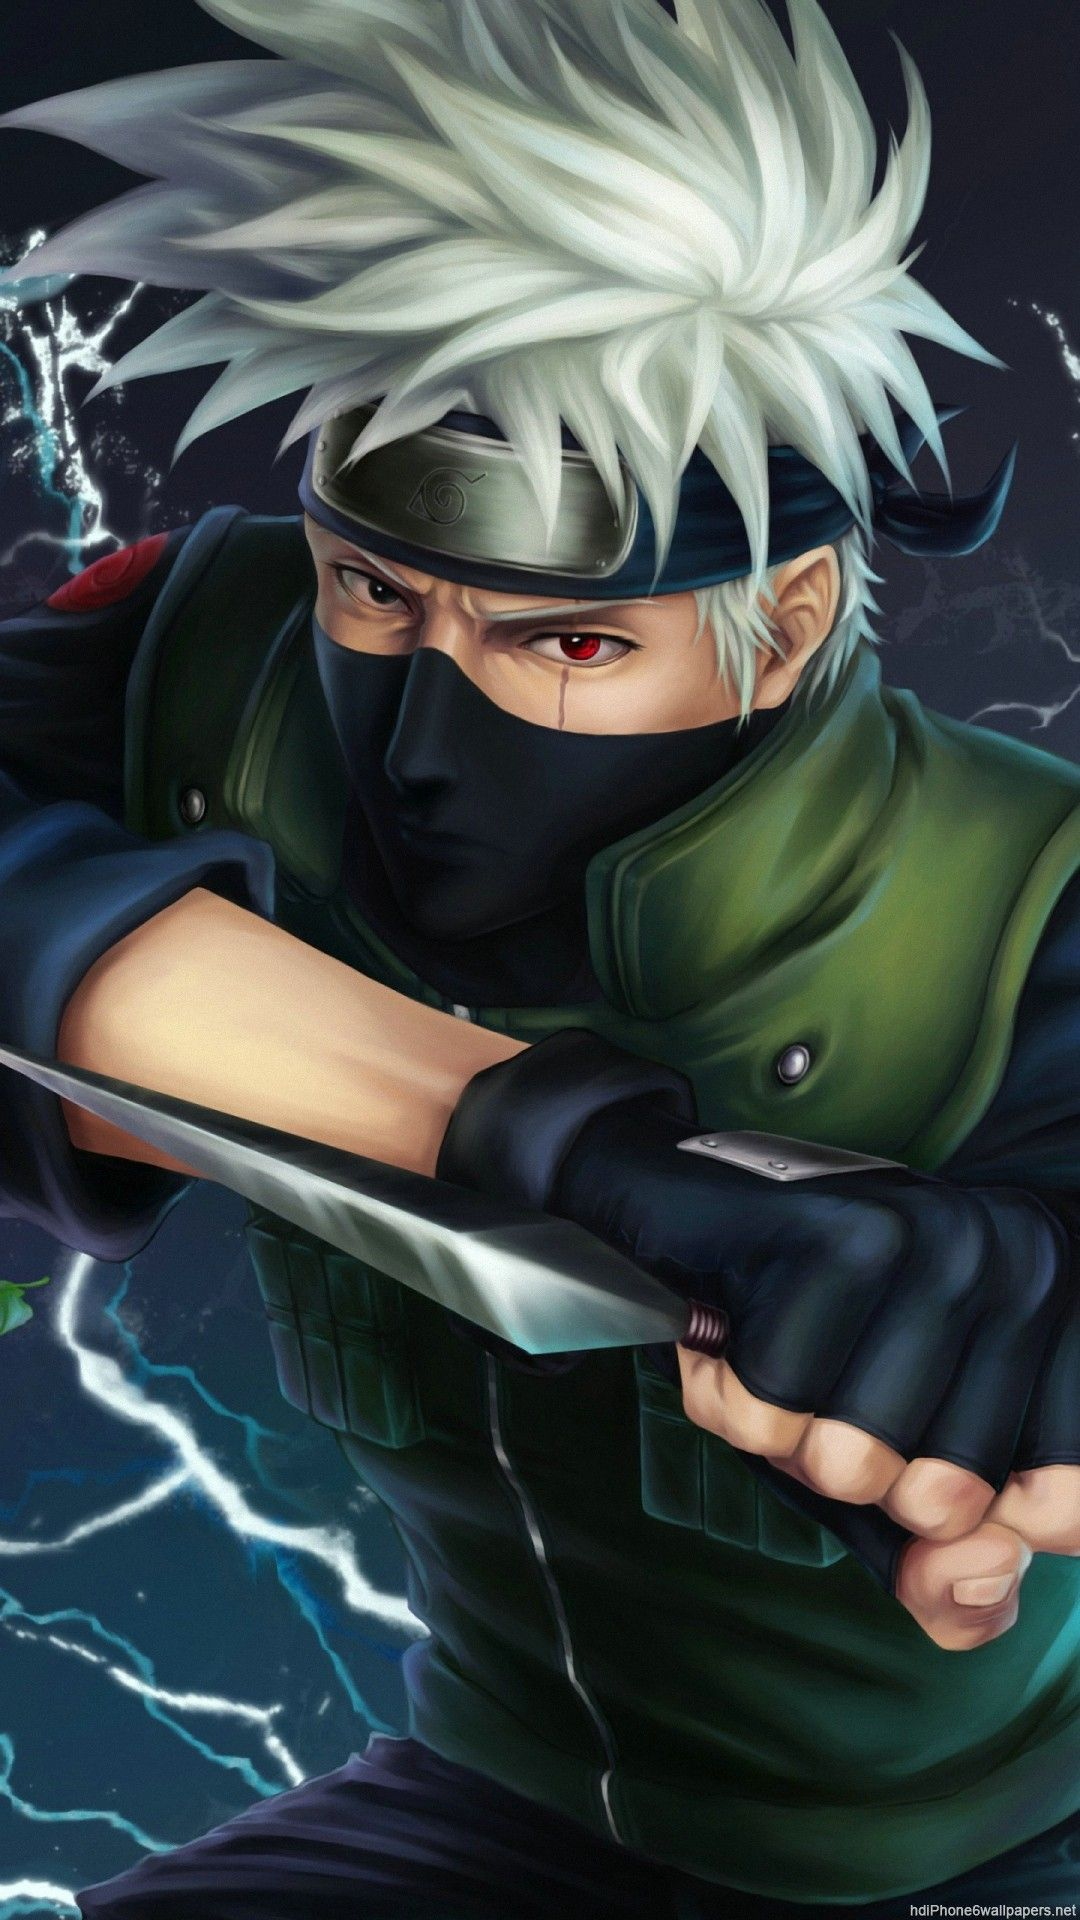 Best Anime Wallpaper 3d 3d Naruto Anime Iphone Wallpaper Cool Colourful Background Life Is Better With Naruto Wallpaper Iphone Wallpaper Naruto Anime Naruto